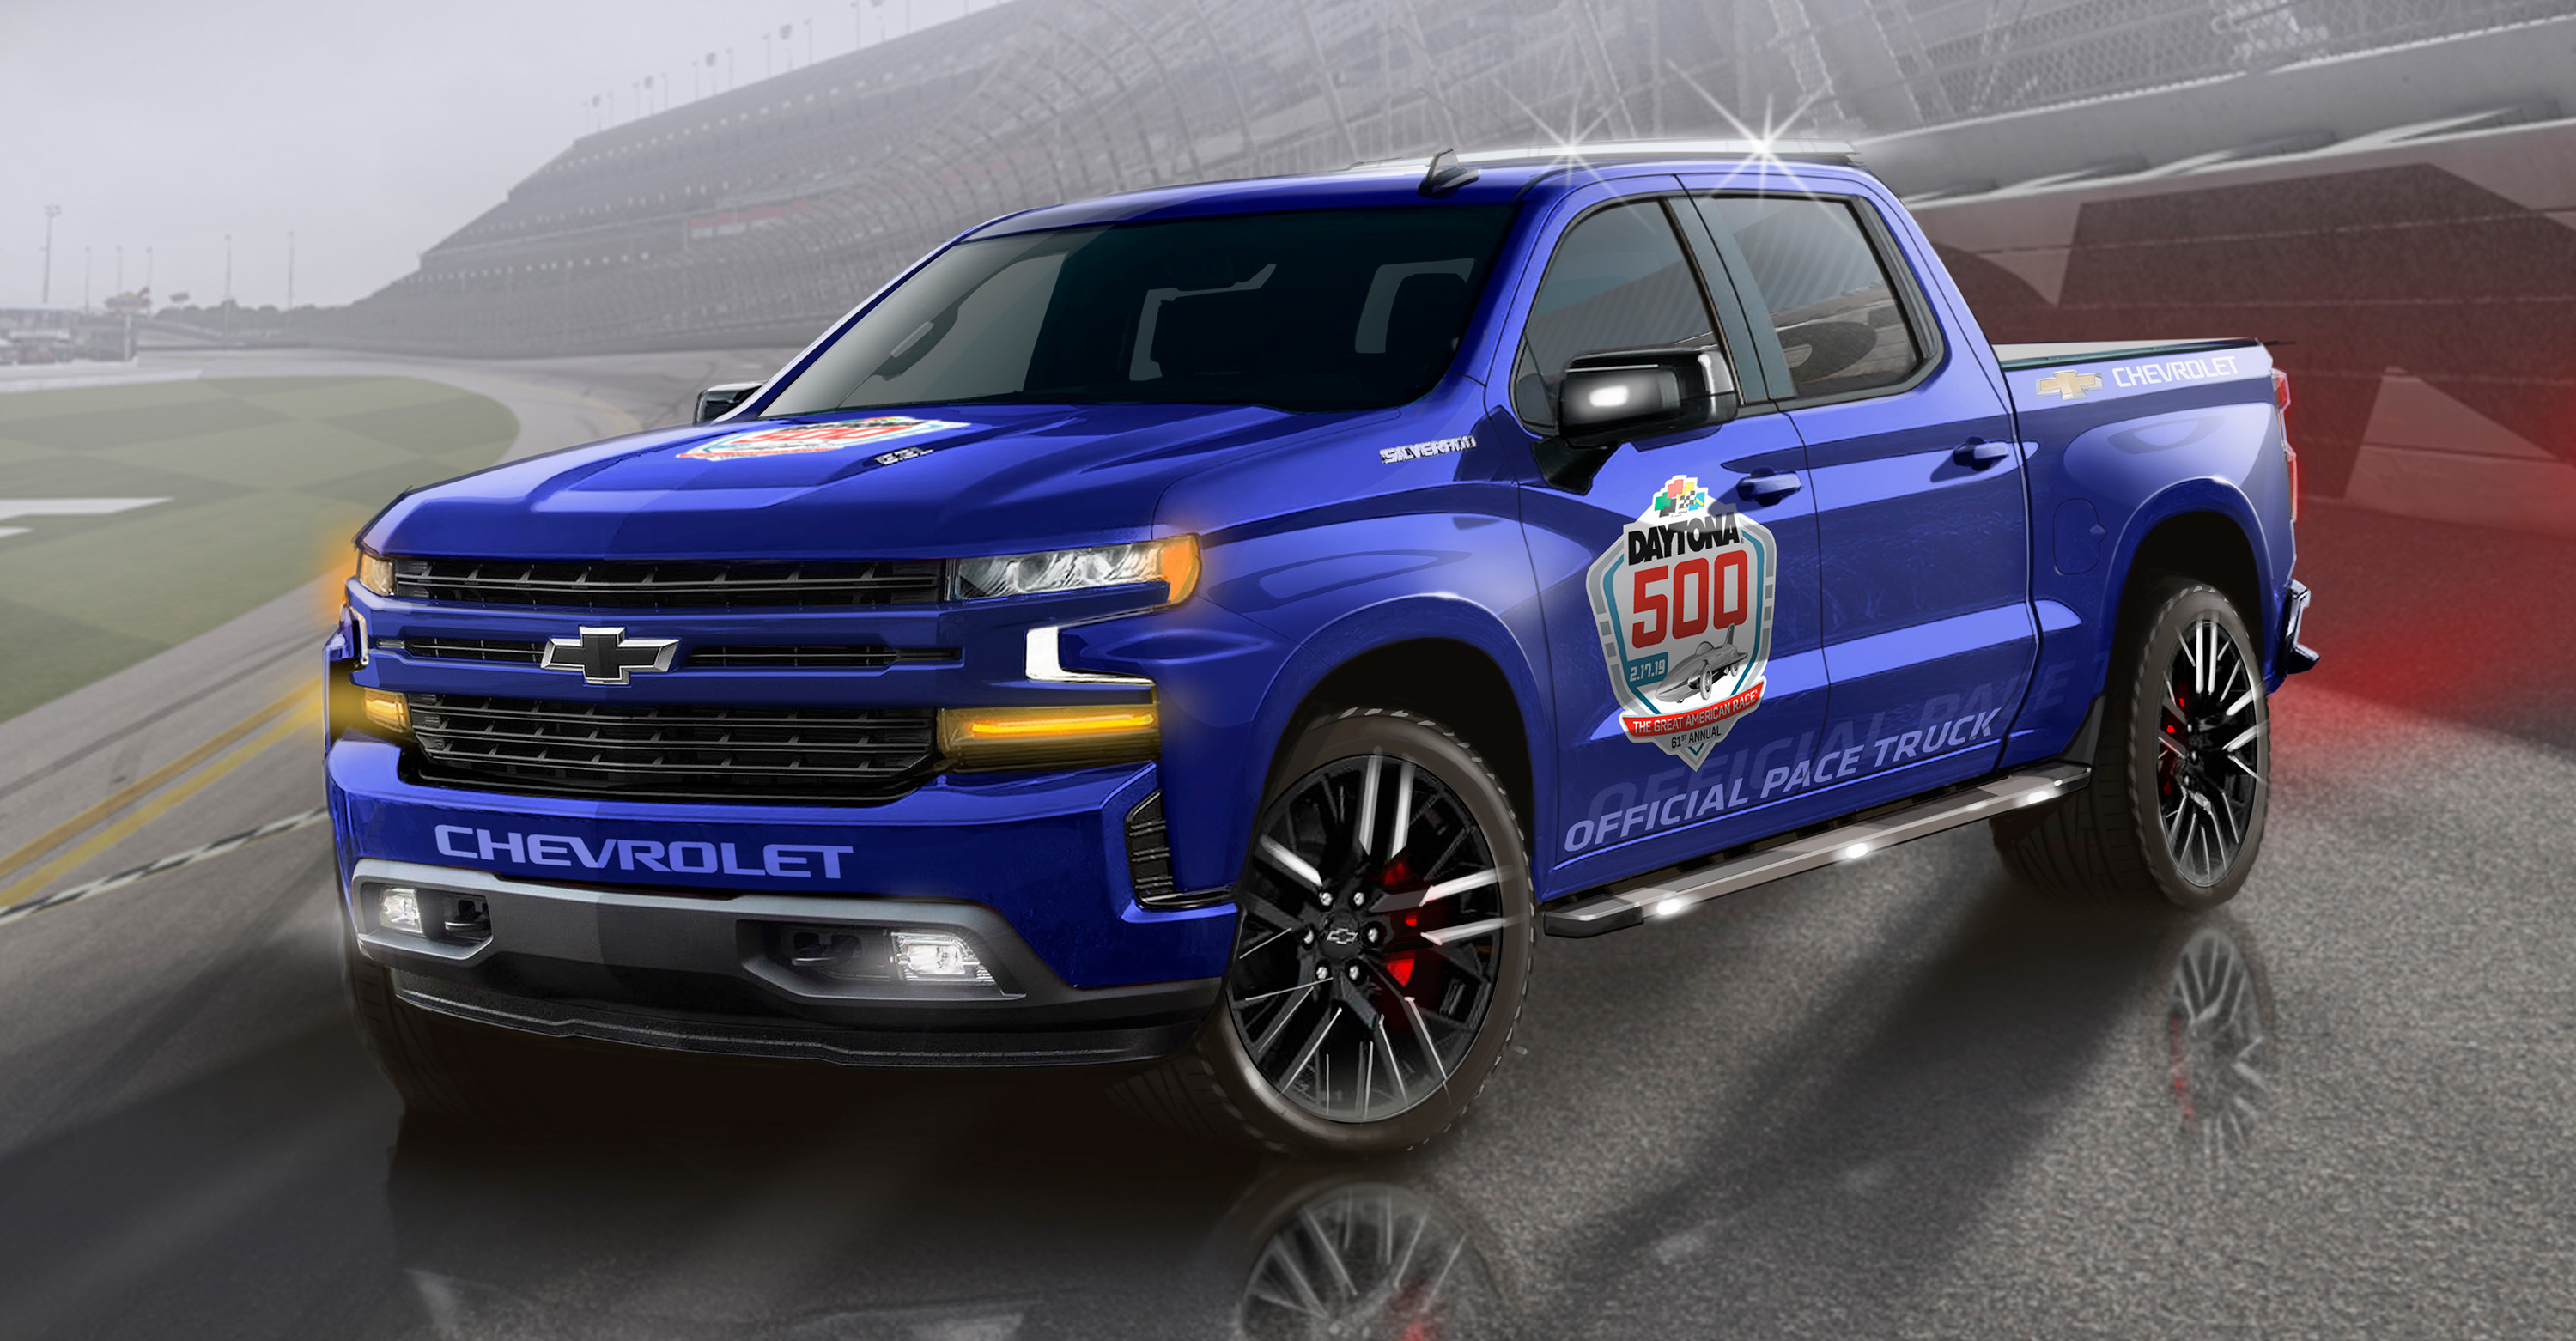 Dale Earnhardt Jr. to Pace 2019 Daytona 500 in All-New ...